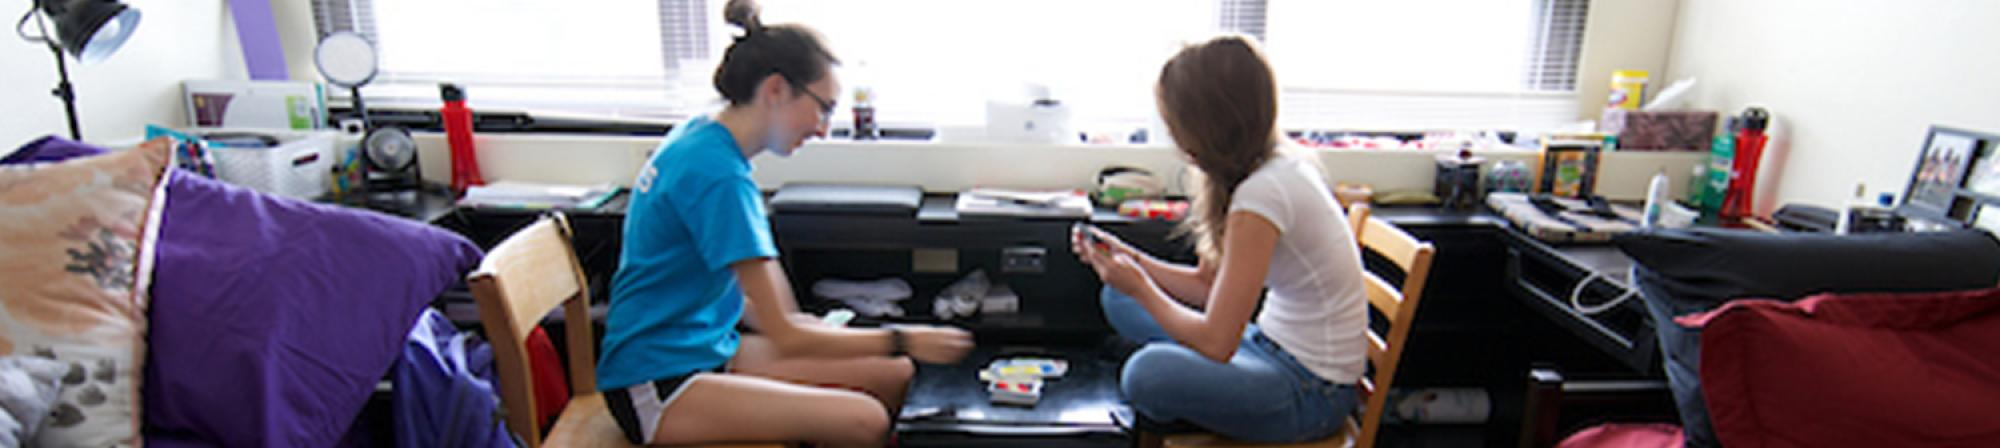 two female students sitting in their room playing cards and using the mini-fridge as a table